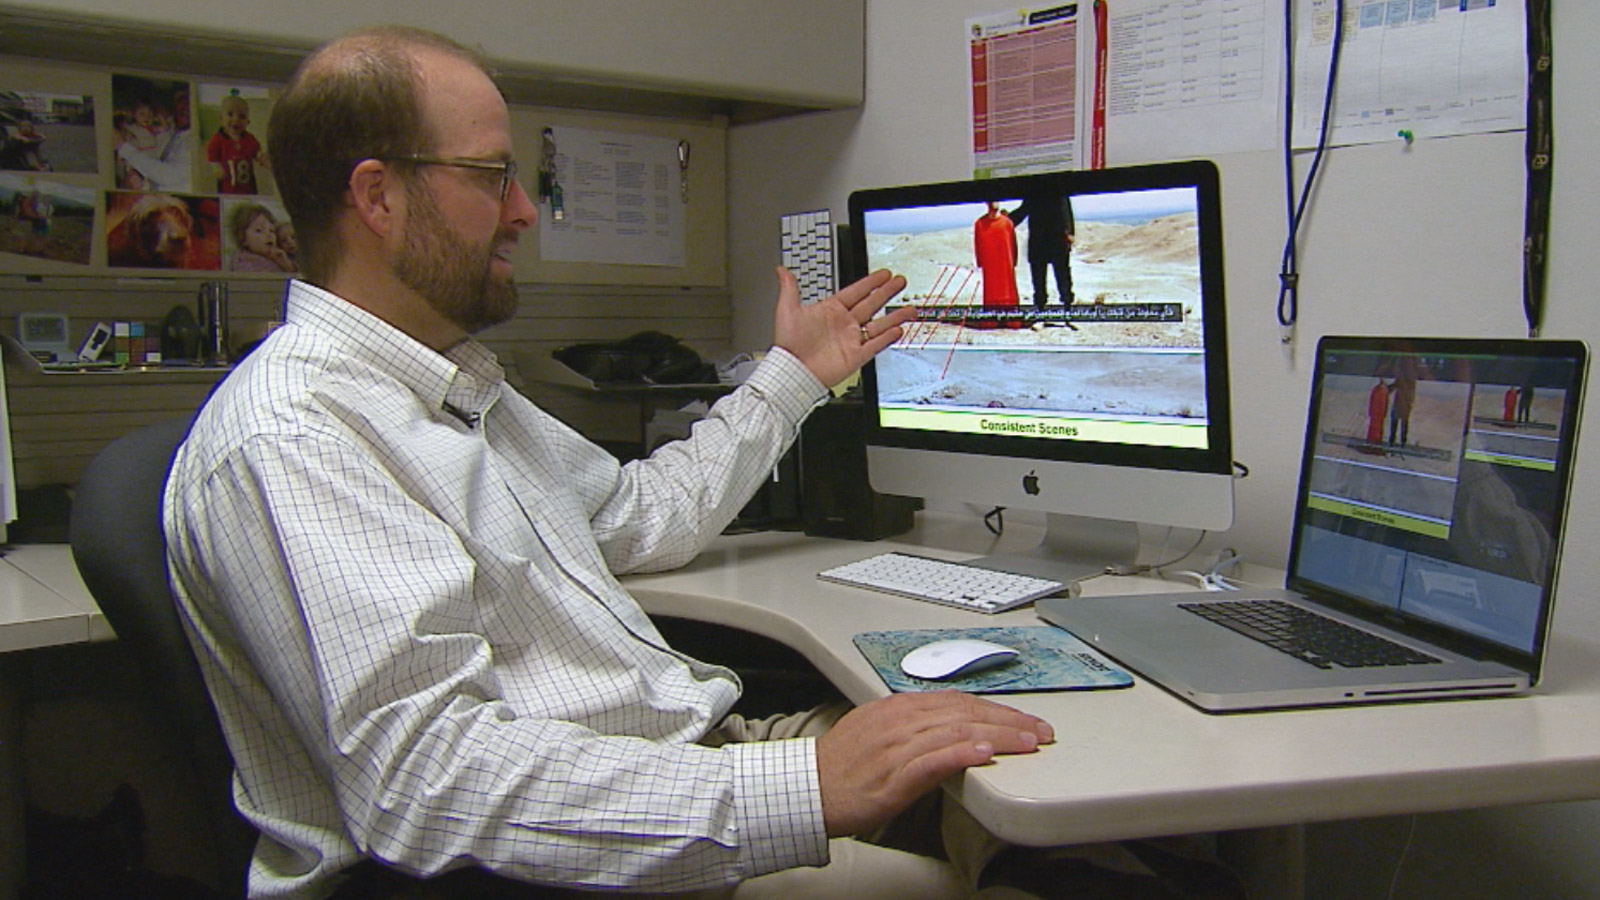 Assoc. Dir. of CU Denver Nat'l Center Forensic Media   analyzes ISIS video (credit: CBS)